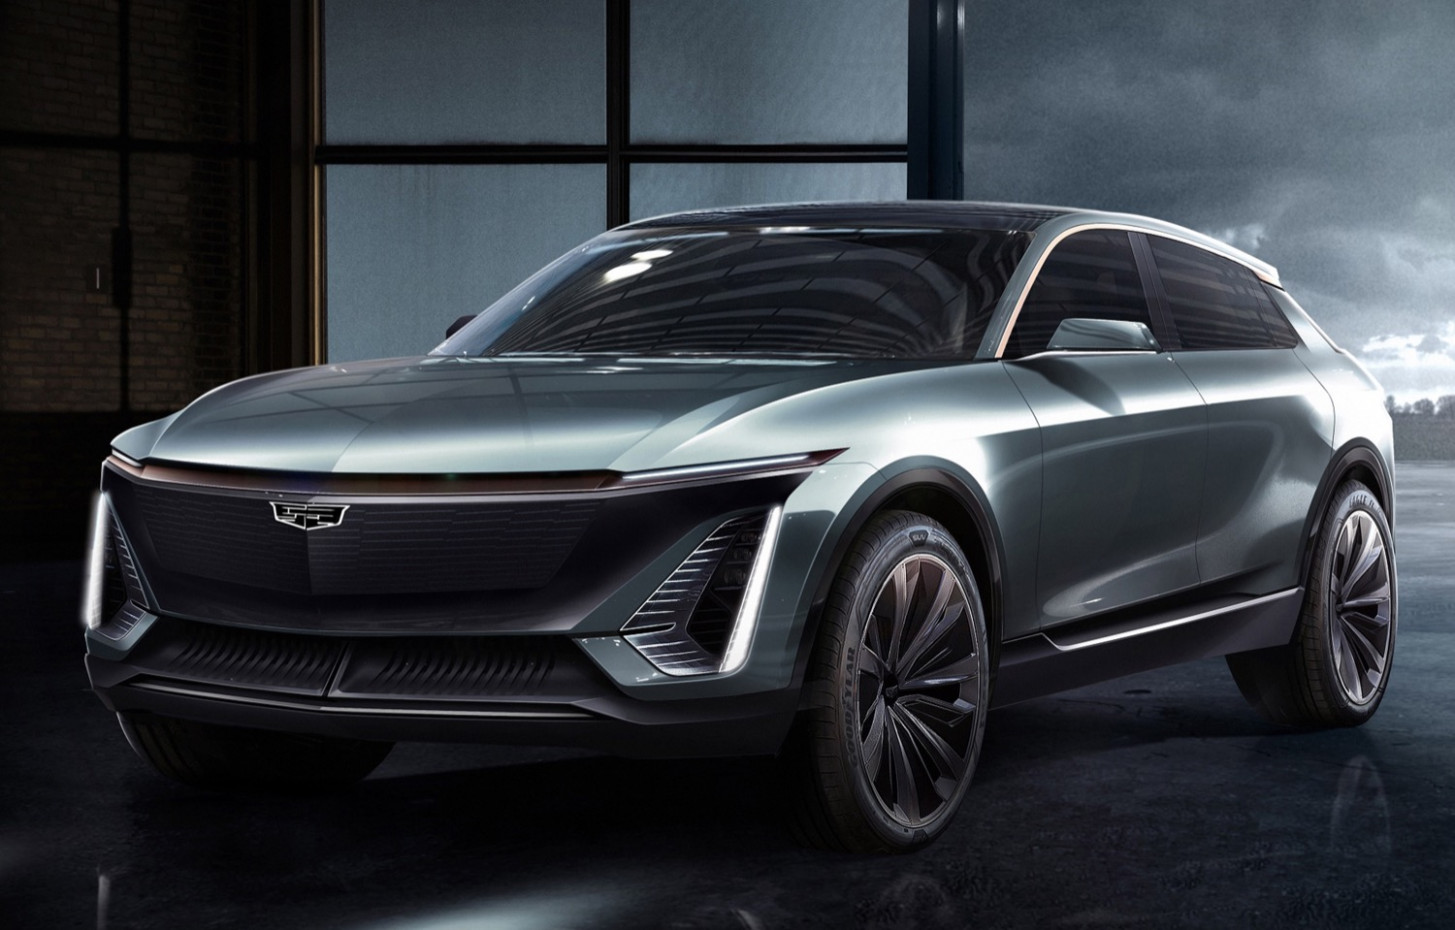 Performance When Will The 2022 Cadillac Xt5 Be Available